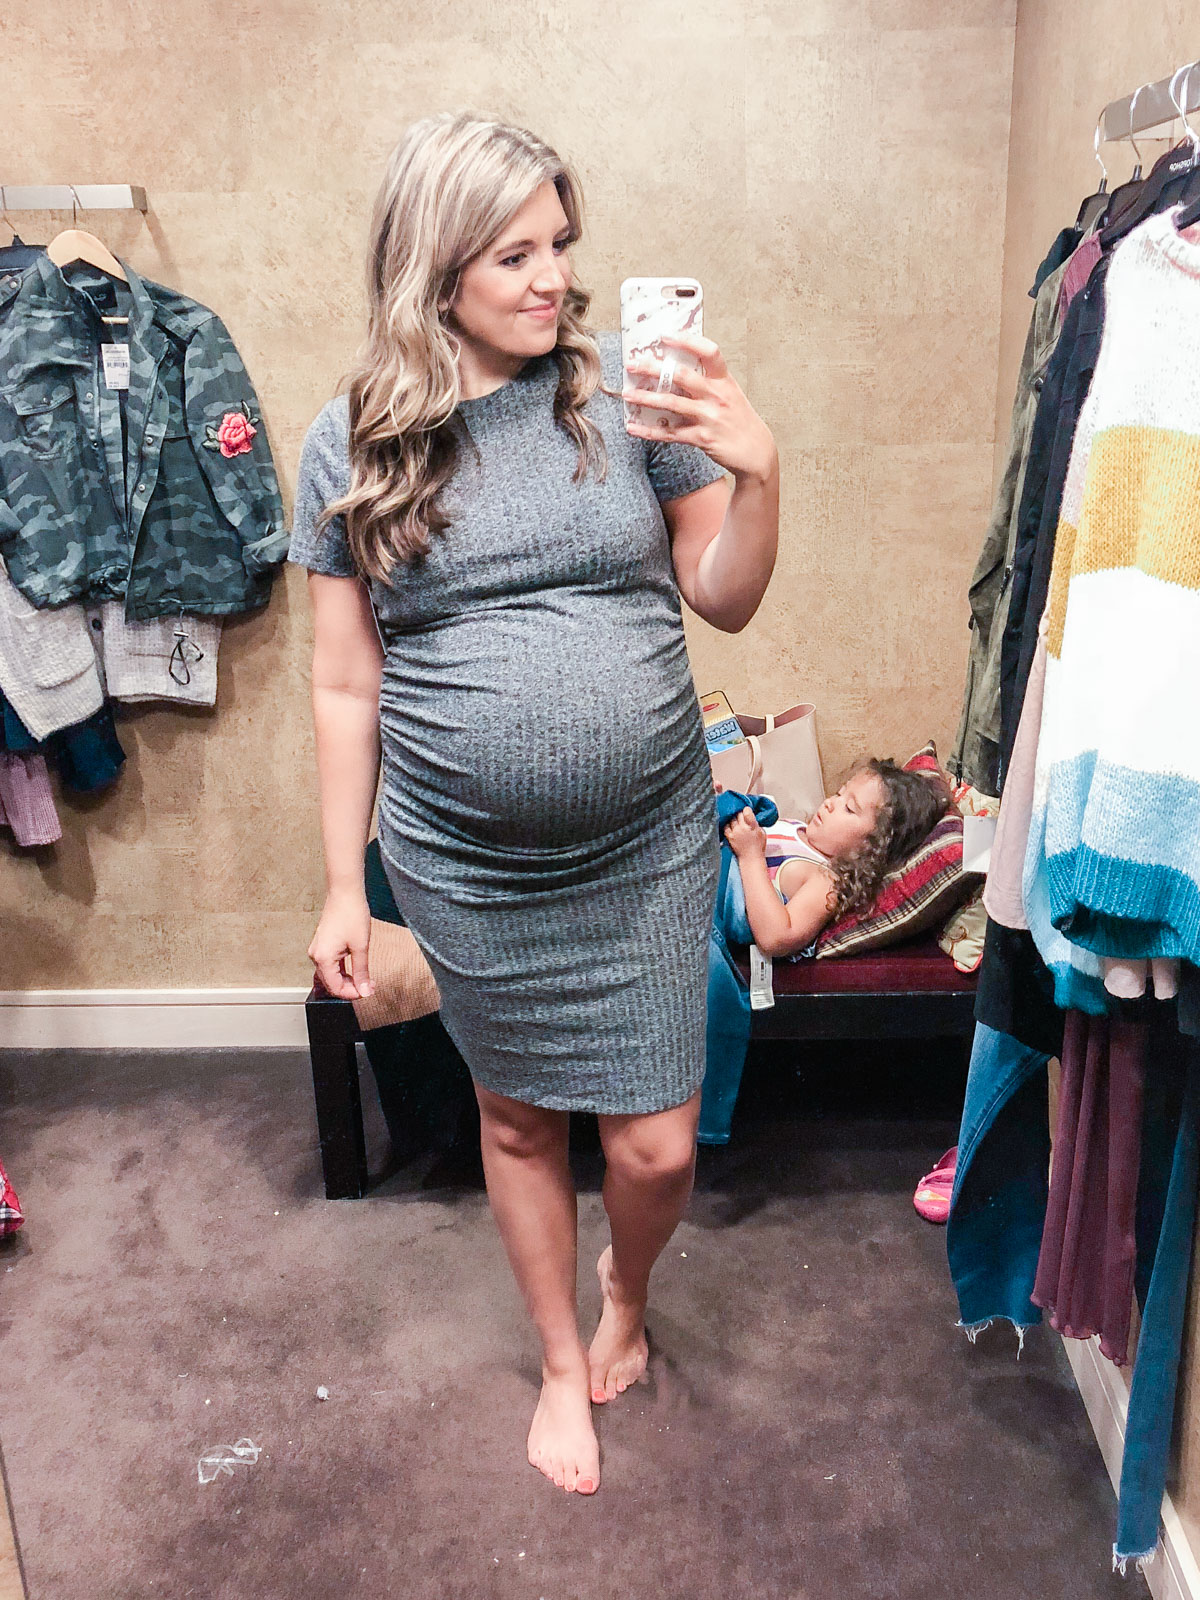 BP. ruched dress - Nordstrom anniversary sale 2018 try-on session: over 25 items reviewed for fit and size!   bylaurenm.com